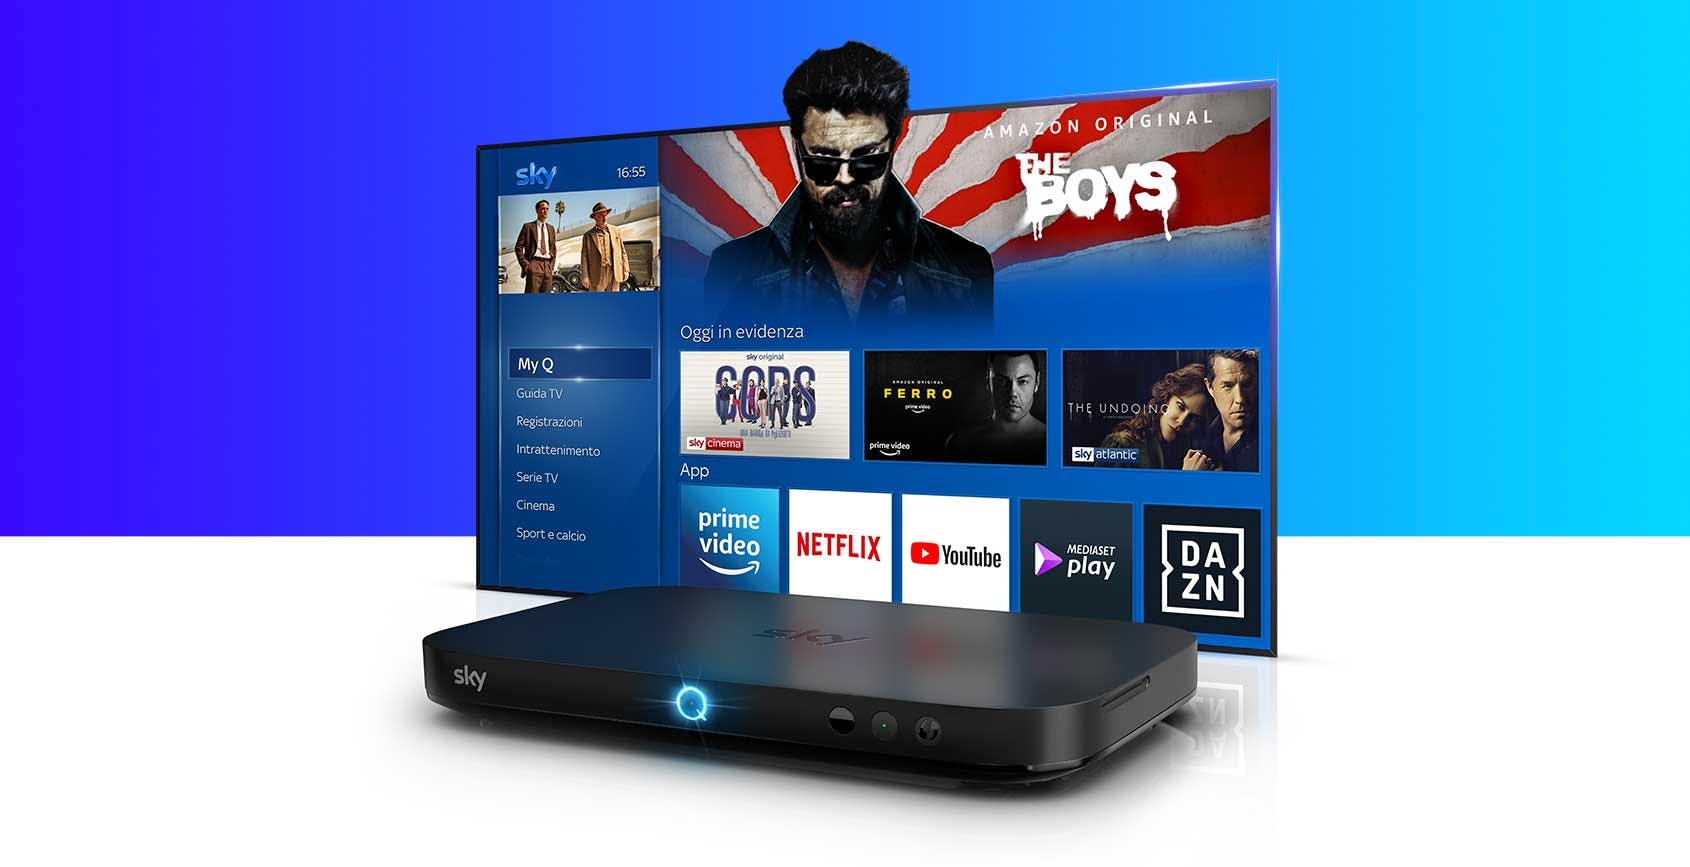 Amazon e Sky, accordo europeo: Prime Video va su Sky Q e Now TV Stick, Now TV sbarca su Fire TV Stick